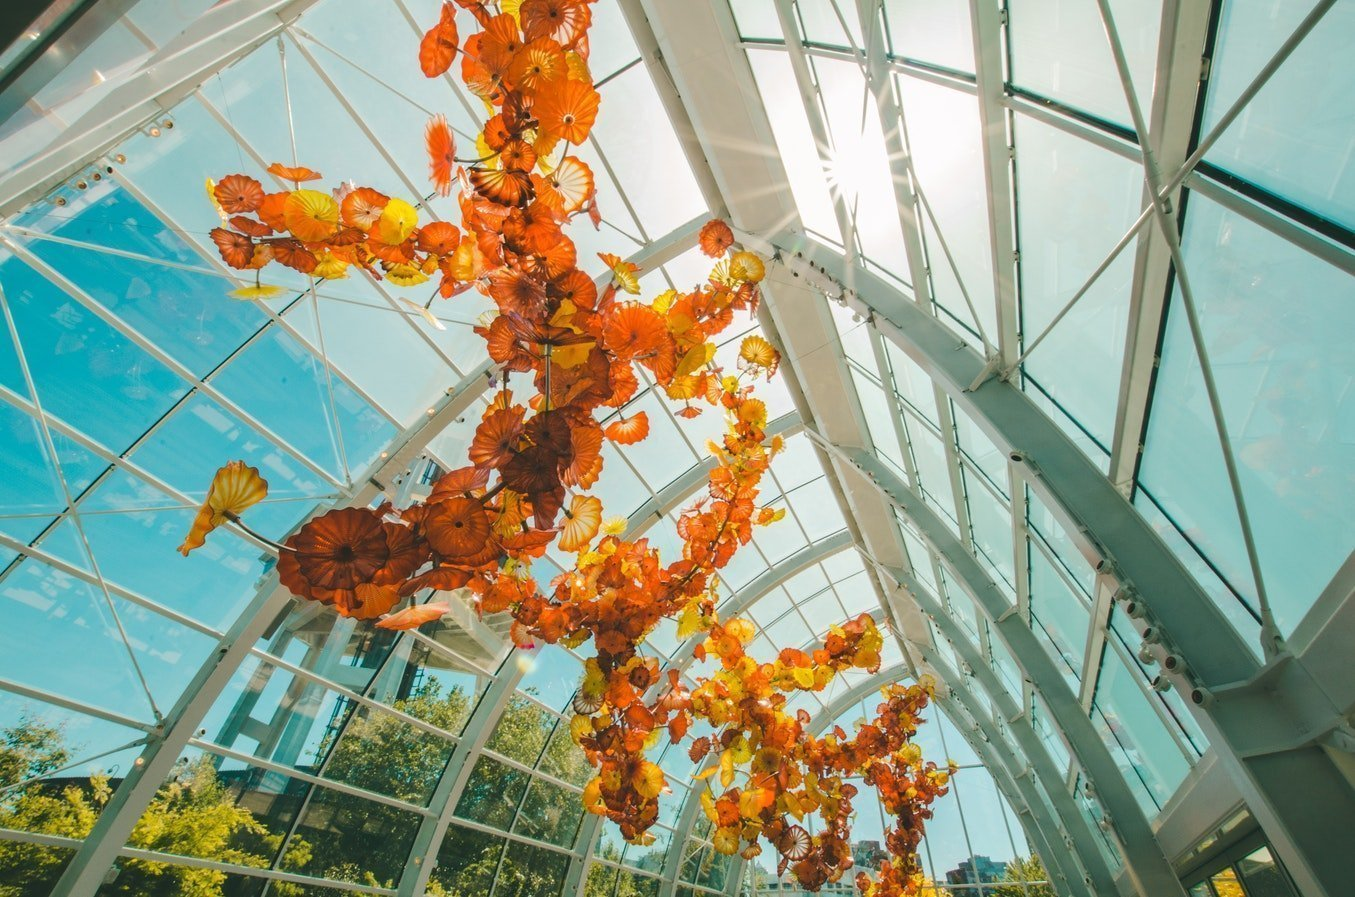 Top 10 Sights to See in Seattle: Chihuly Garden and Glass Museum